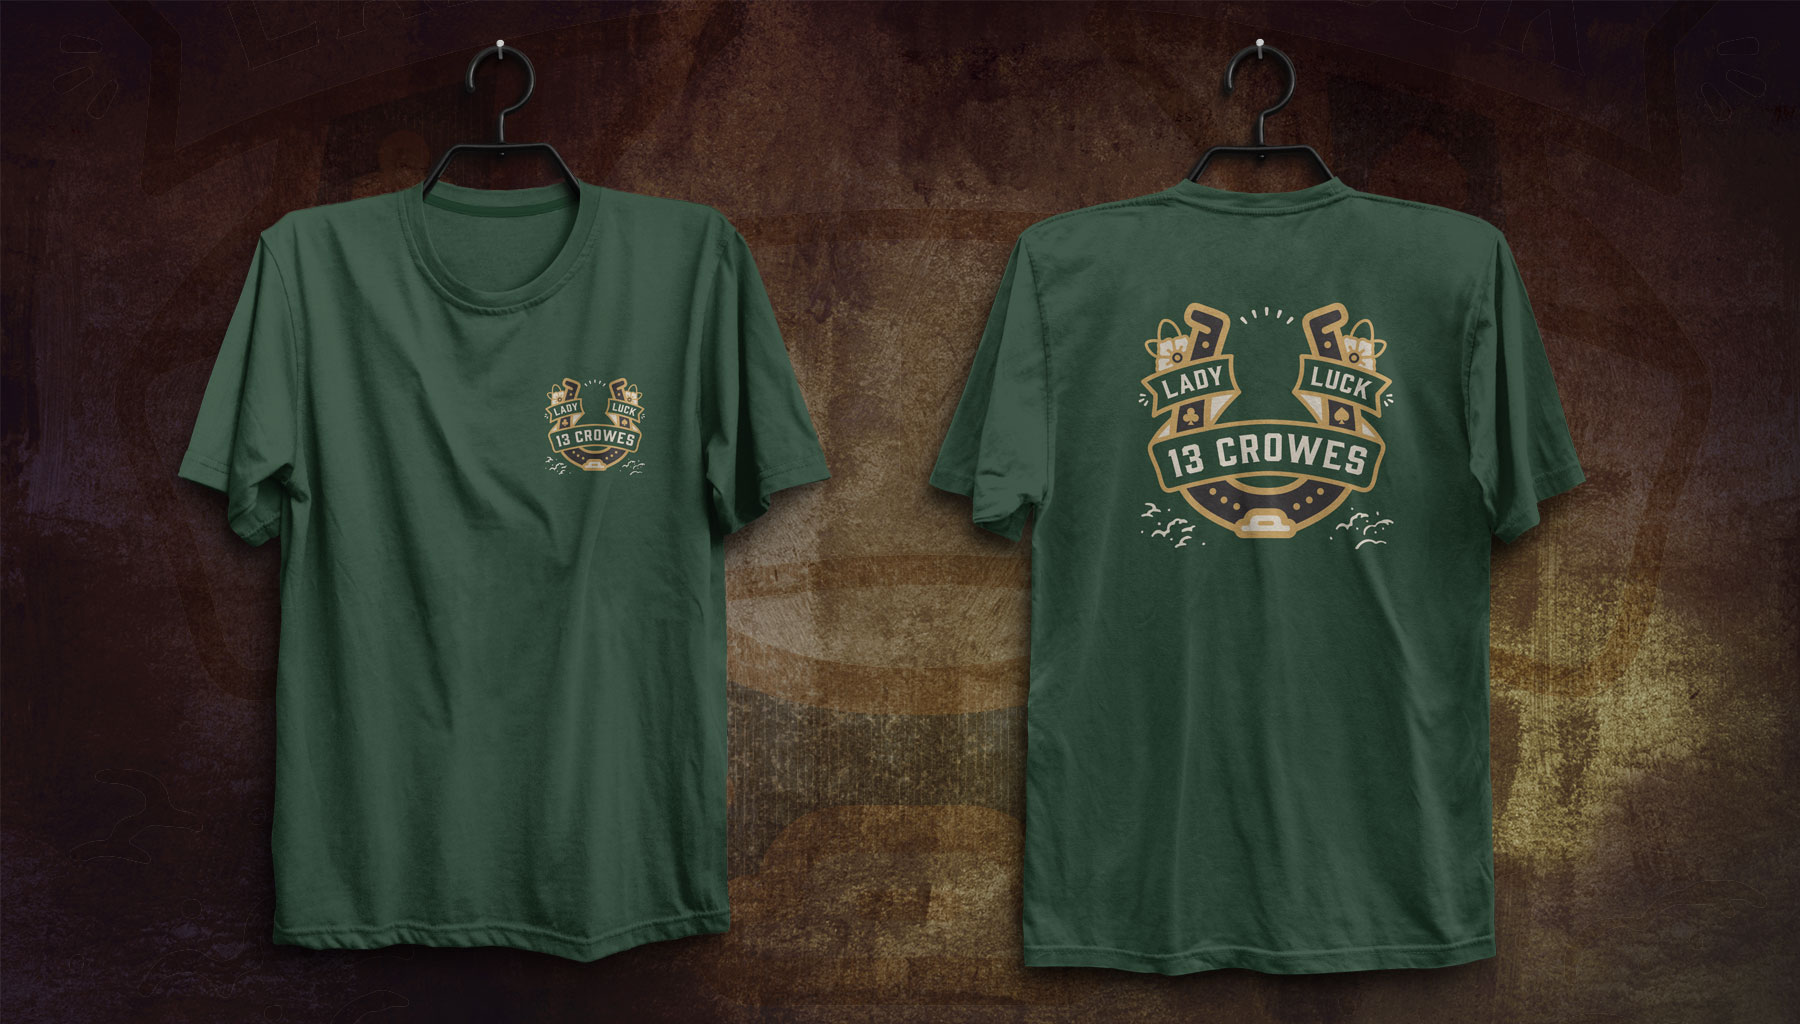 13 Crowes Lady Luck Shirt